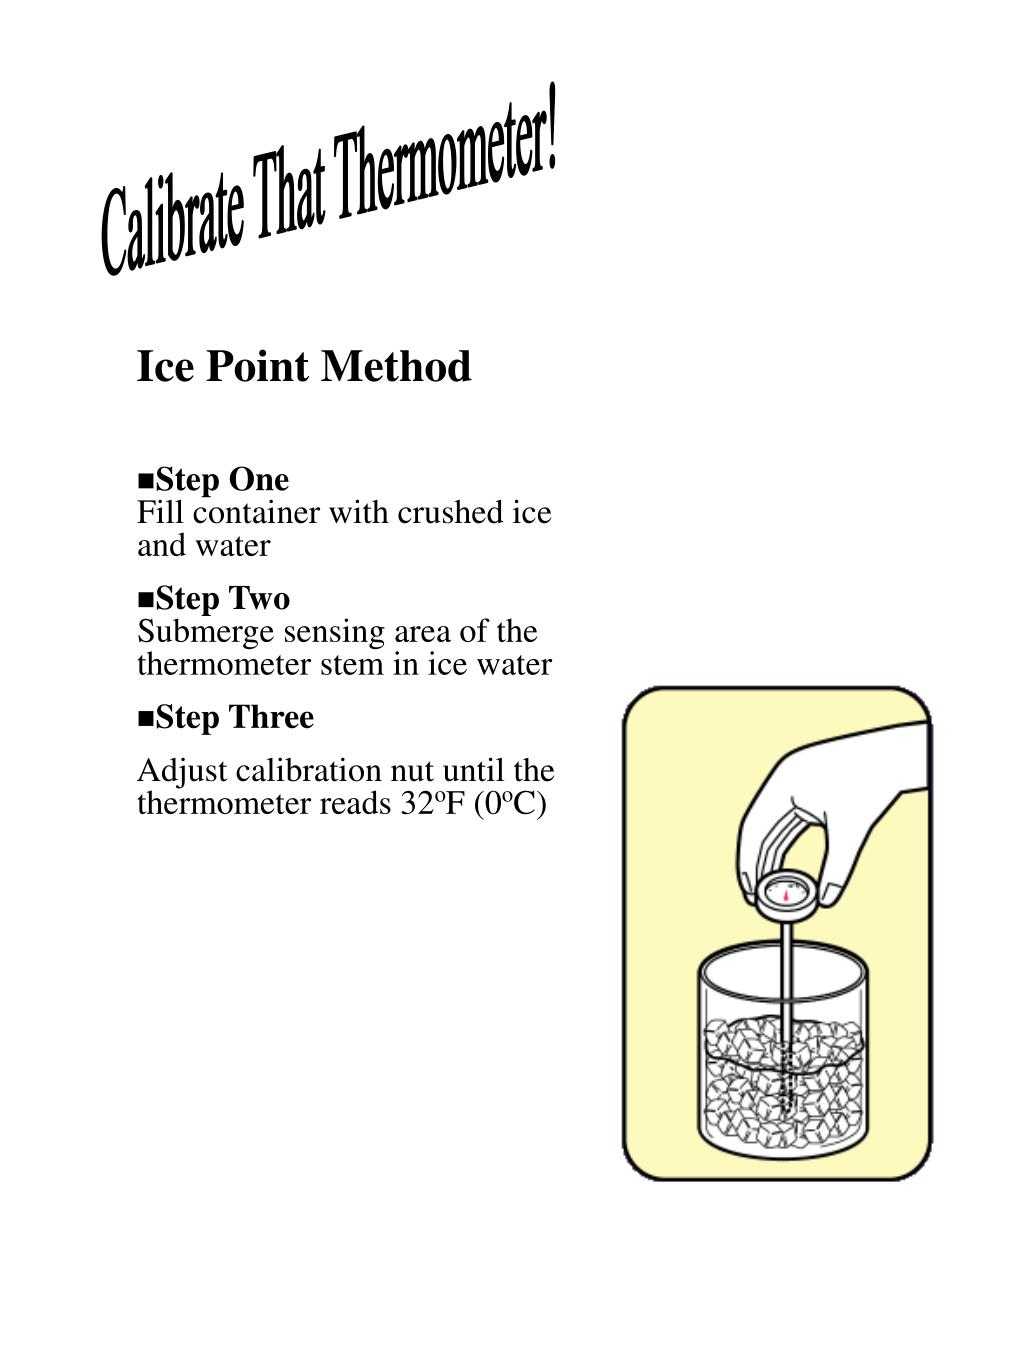 Calibrate That Thermometer!